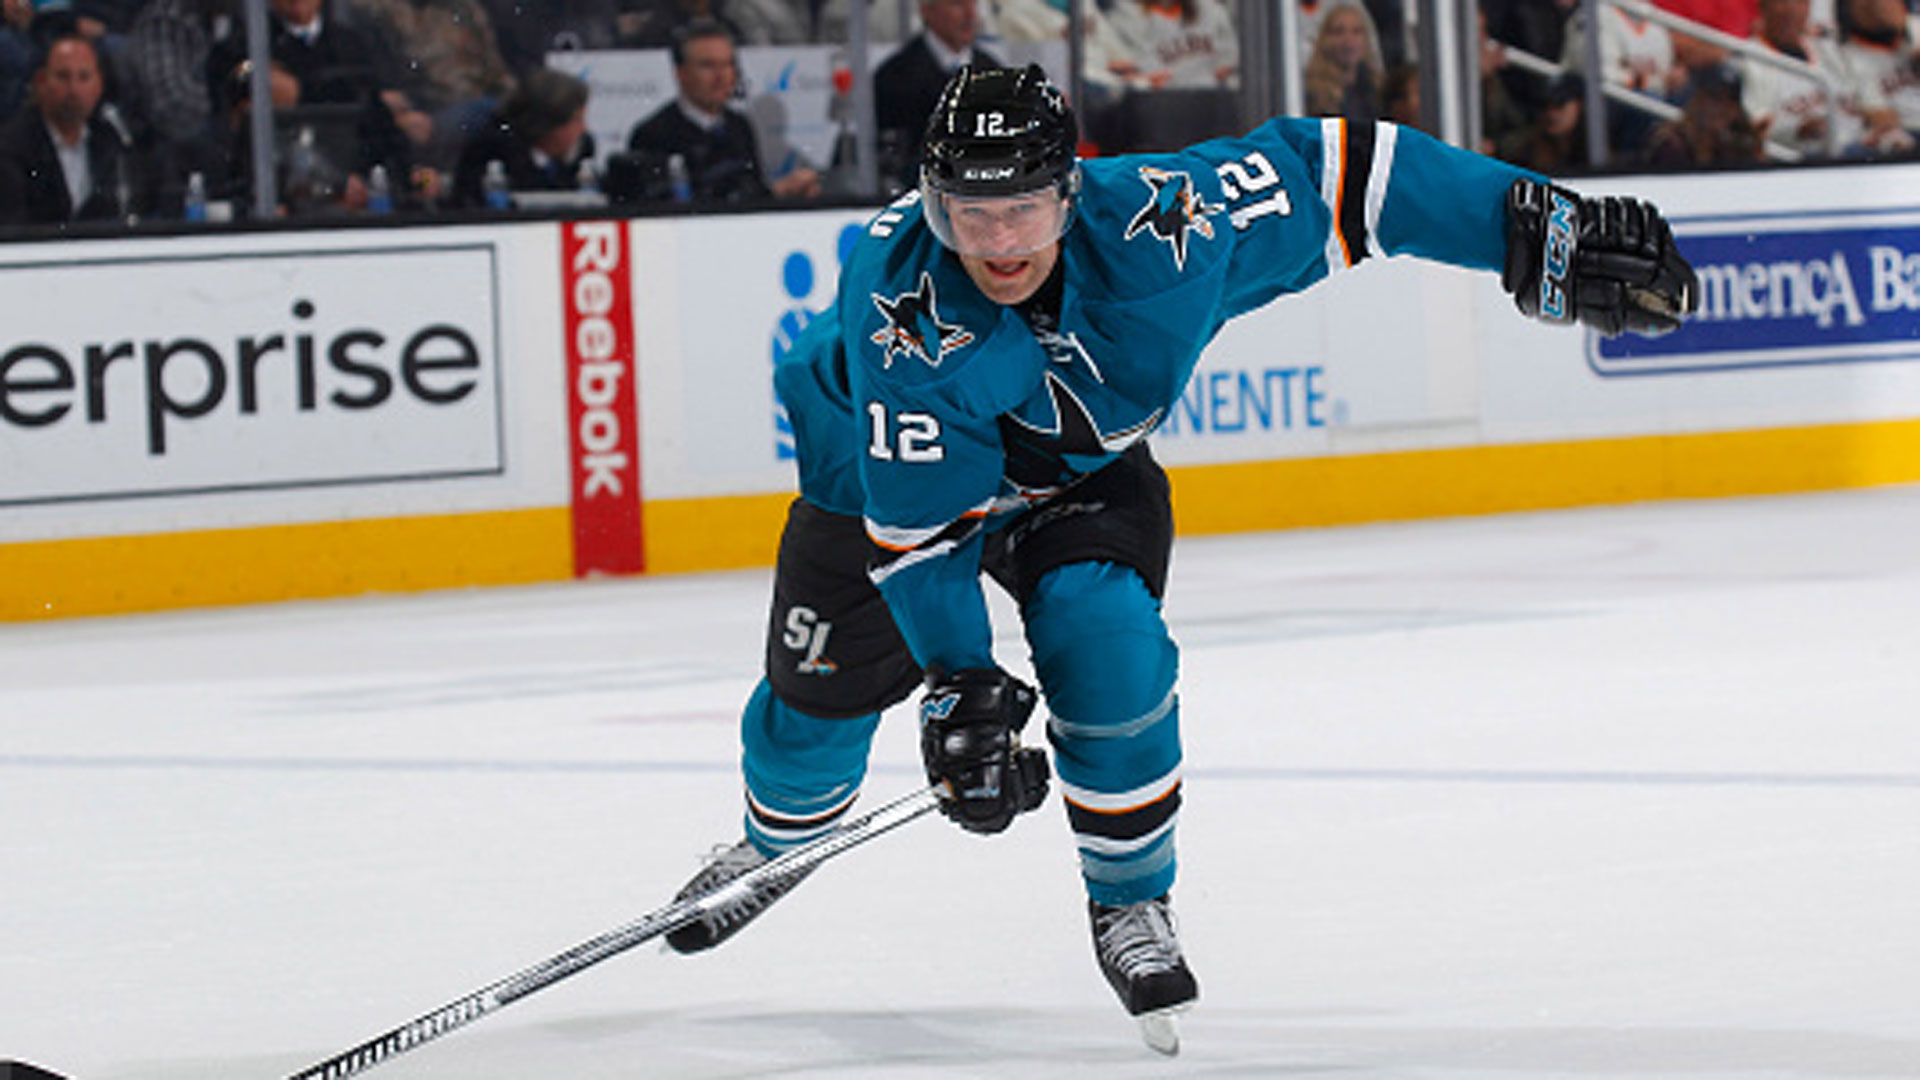 Insider Trading: Why was now the right time for Sharks to sign Marleau?